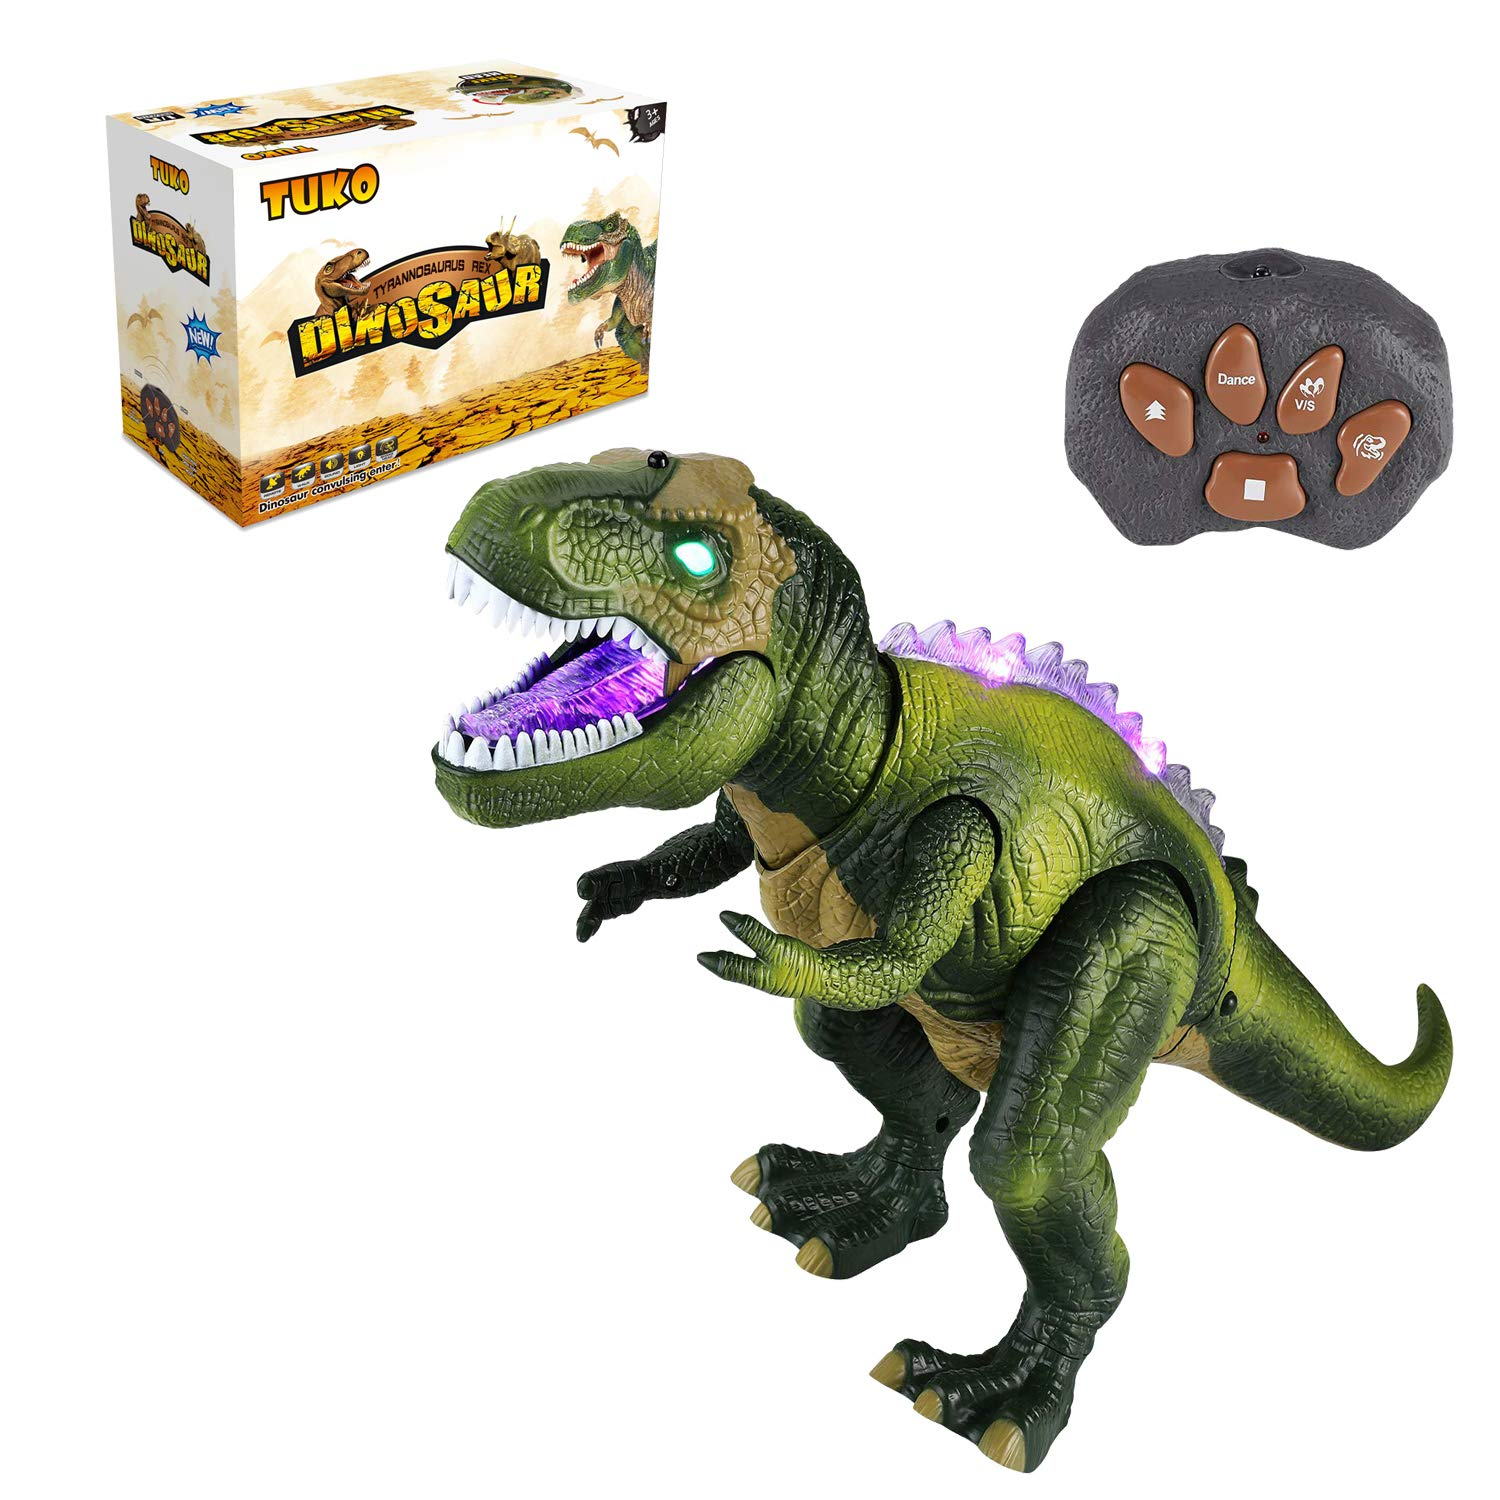 Tuko Light Up Remote Control Dinosaur Toys Jurassic World Walking and Roaring Realistic T-Rex Dinosaur Toys with Glowing Eyes, Walking Movement, Shaking Head for Toddlers Boys Girls